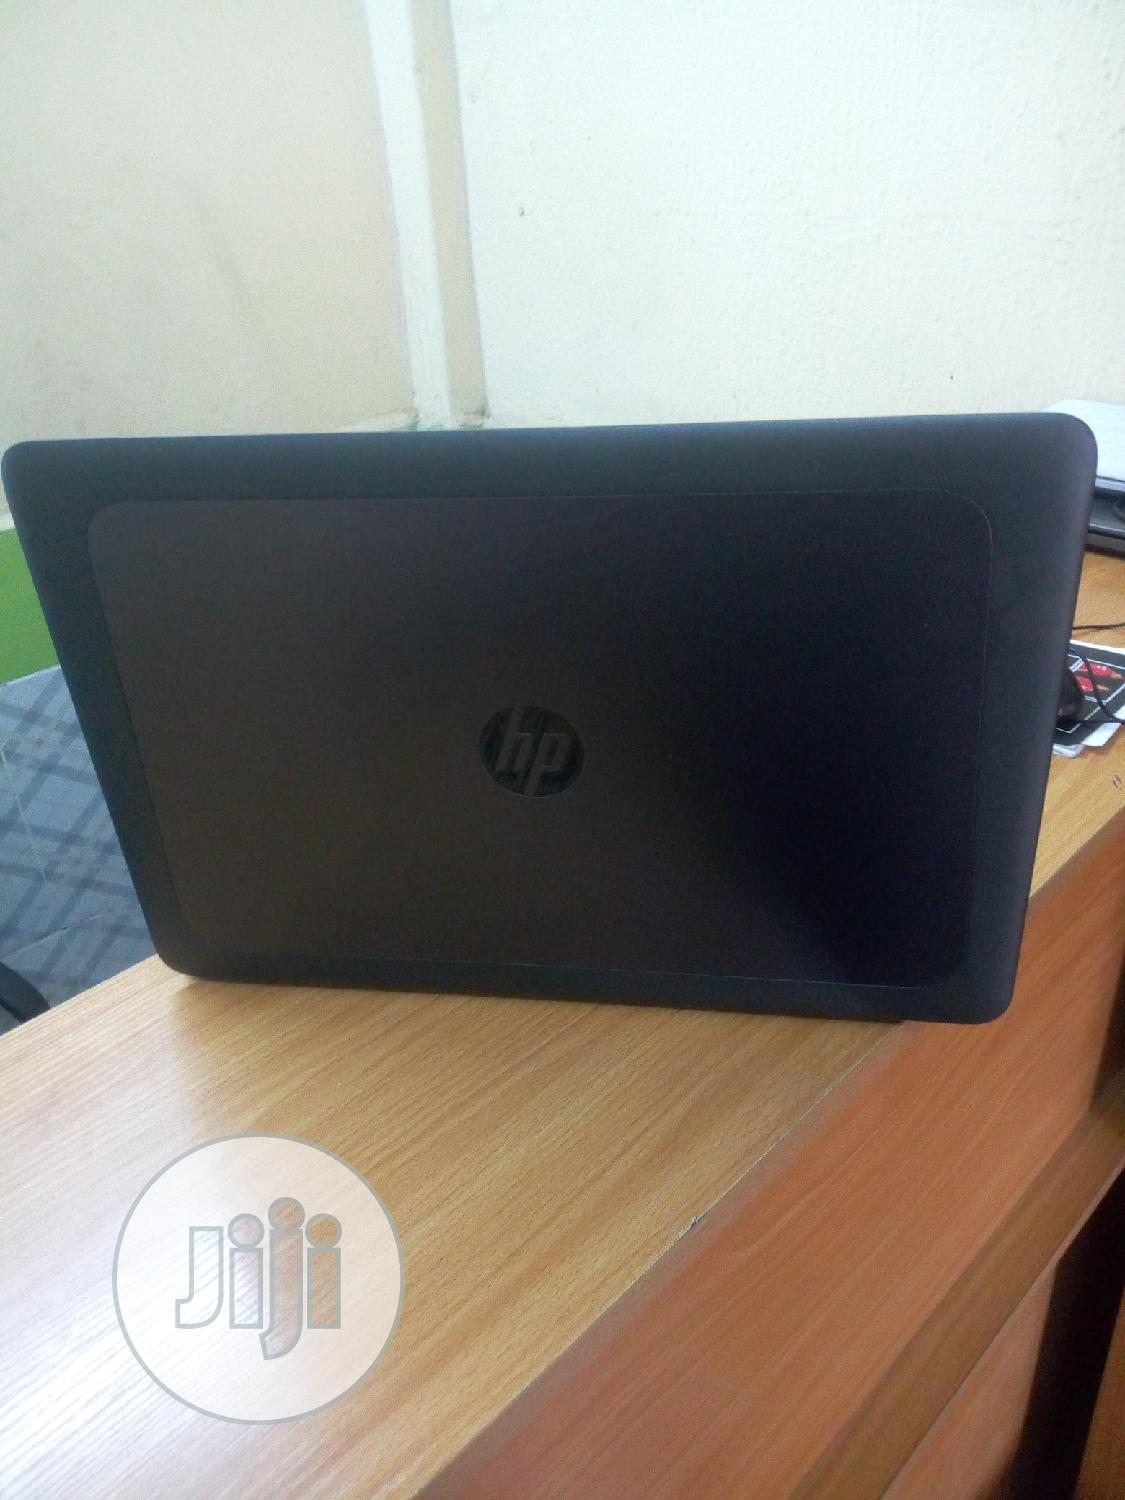 Laptop HP ZBook 17 G3 4GB Intel Core I5 HDD 1T | Laptops & Computers for sale in Wuse 2, Abuja (FCT) State, Nigeria